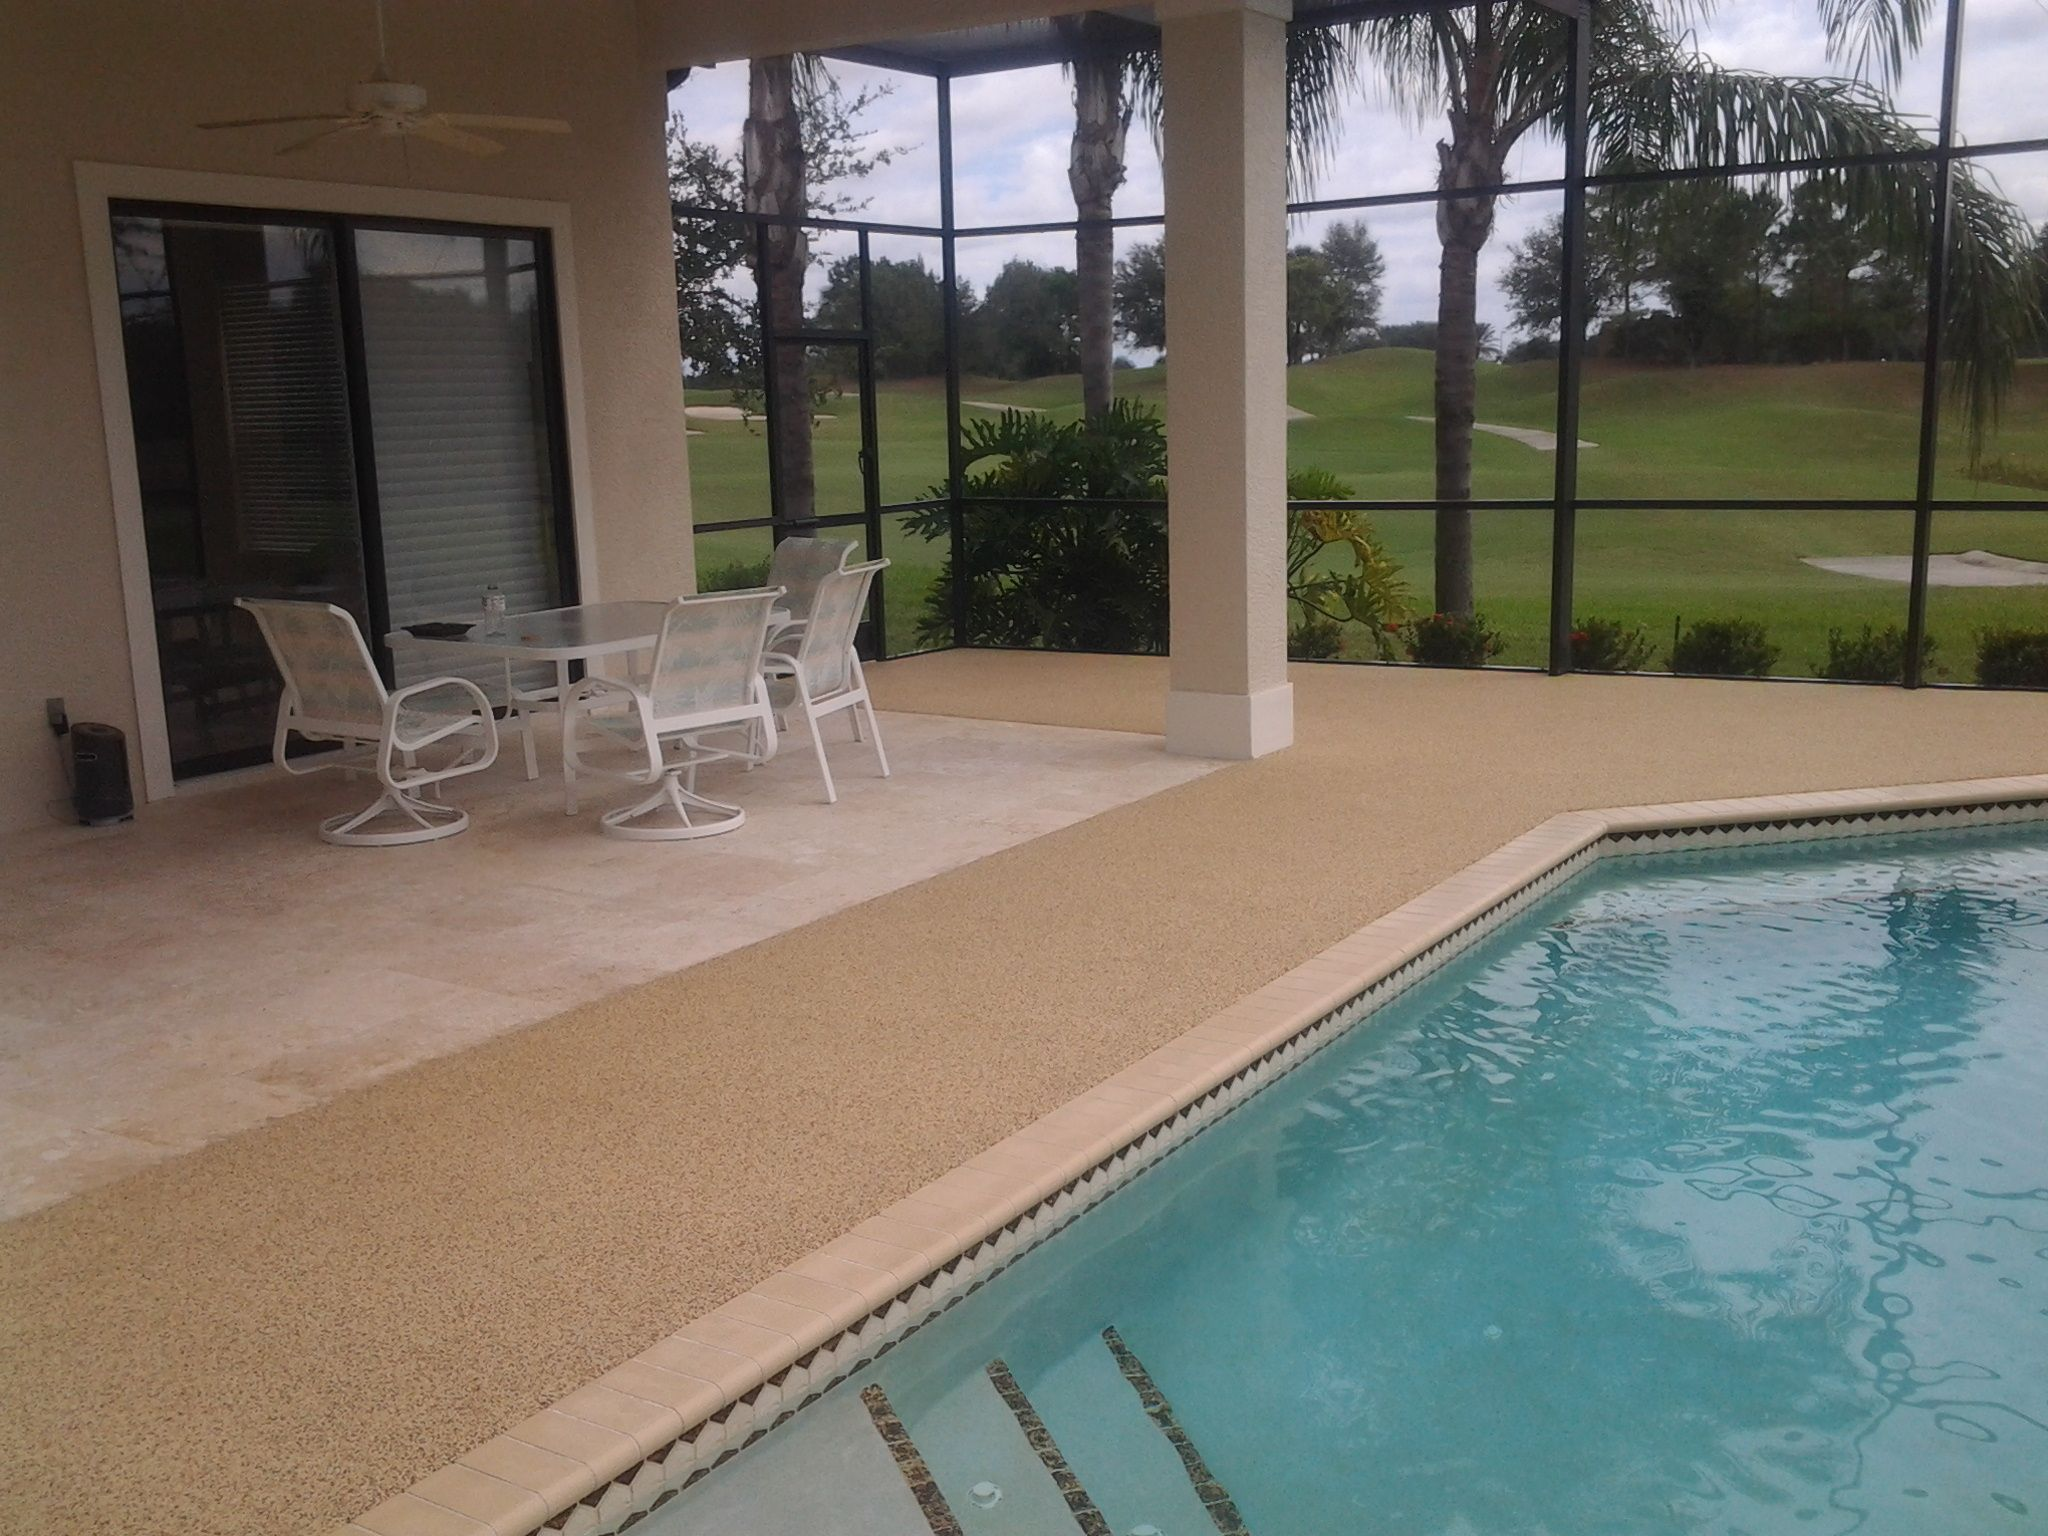 Rubber Pool Surface Around Pool Deck Area And Stone Flooring Under